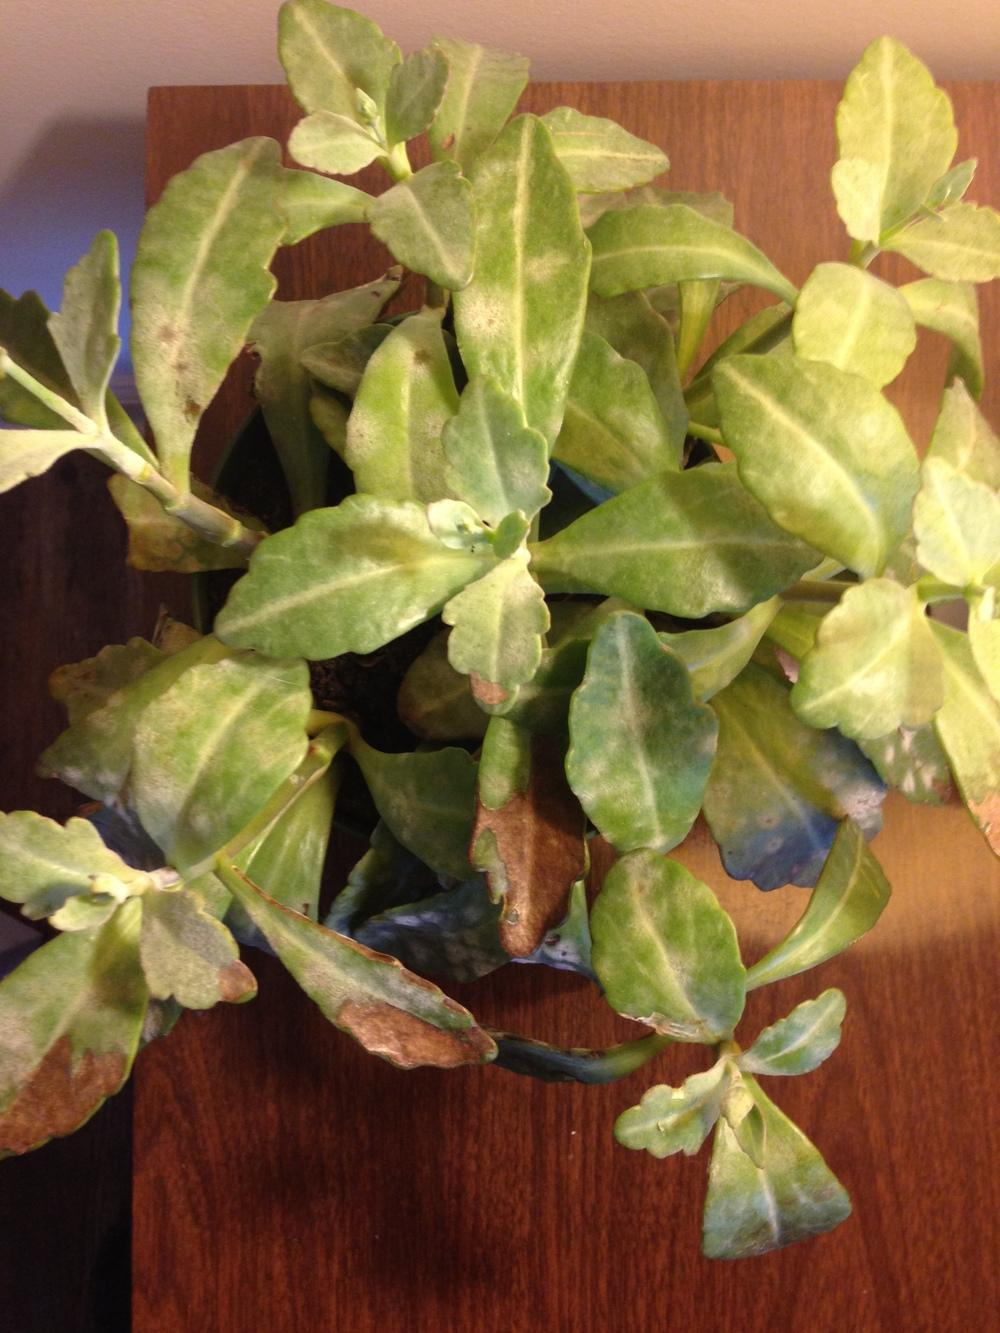 Houseplants forum help identifying a house plant Gardenorg